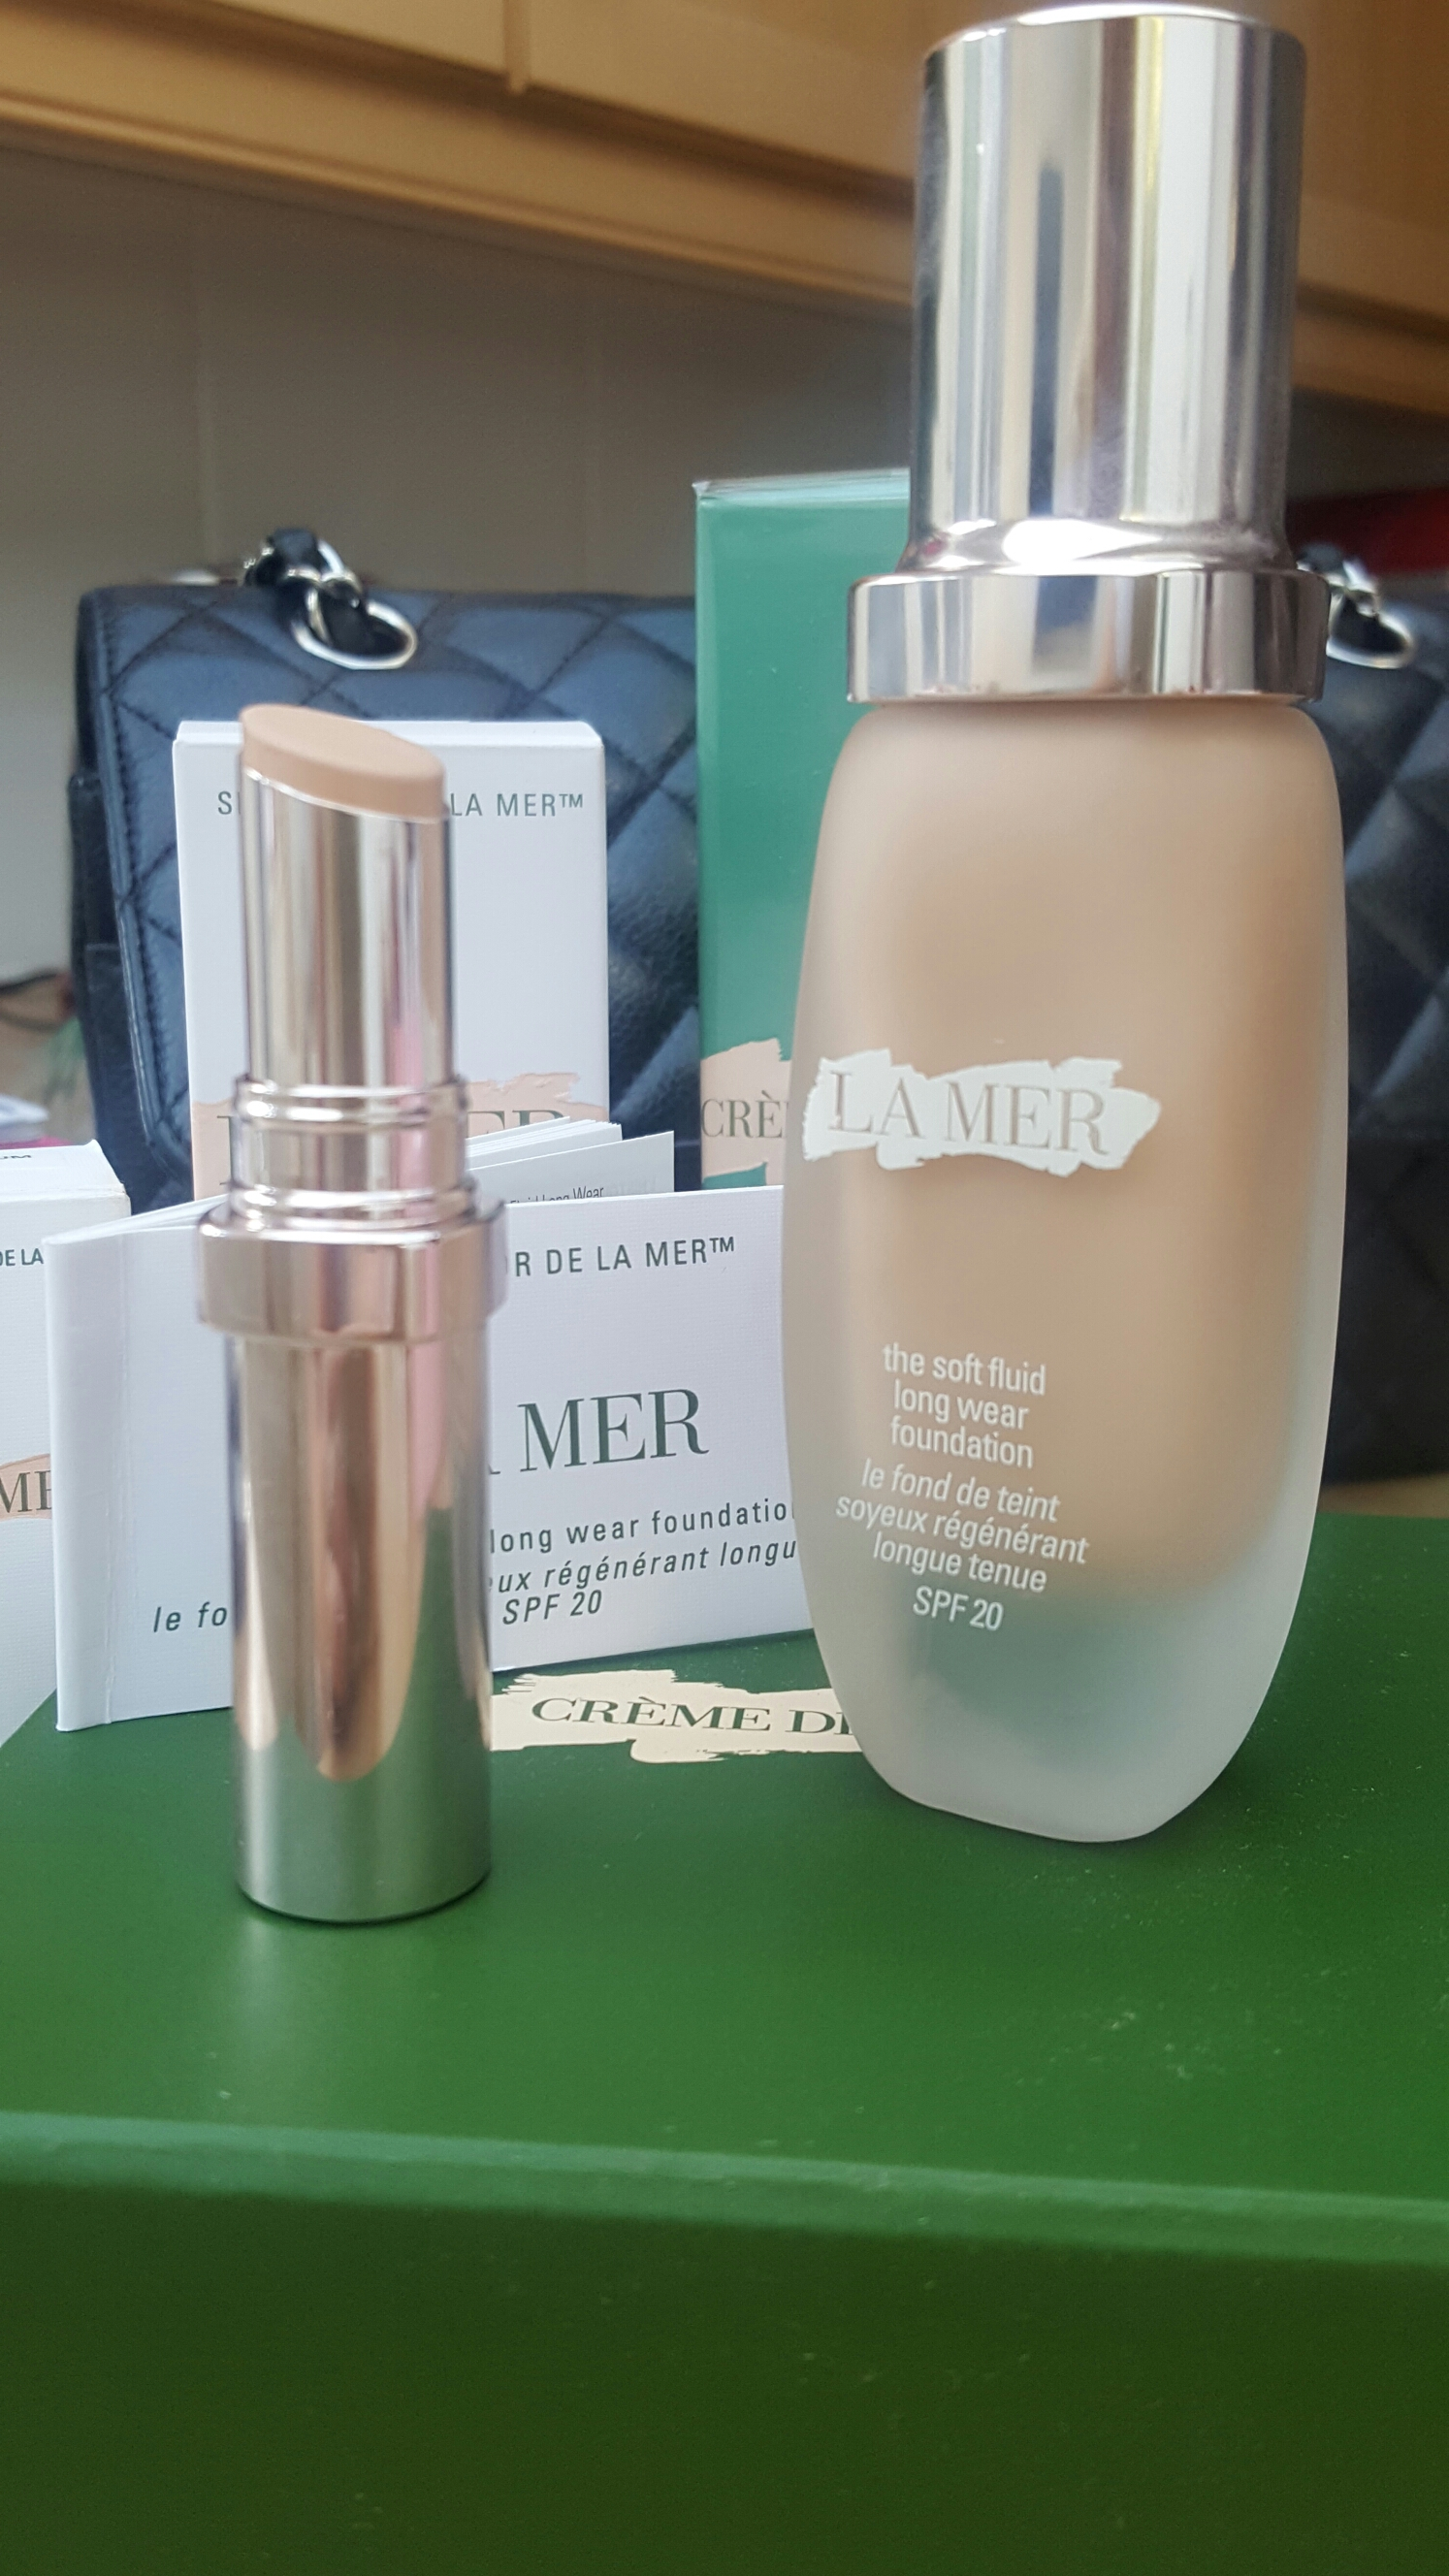 Creme De La Mer Themakeuptent The Mist Anyone Who Has Read Any Of My Previous Posts Will Know That I Have A Long Term Love Affair With So When New Skincolor Range Came On Sale